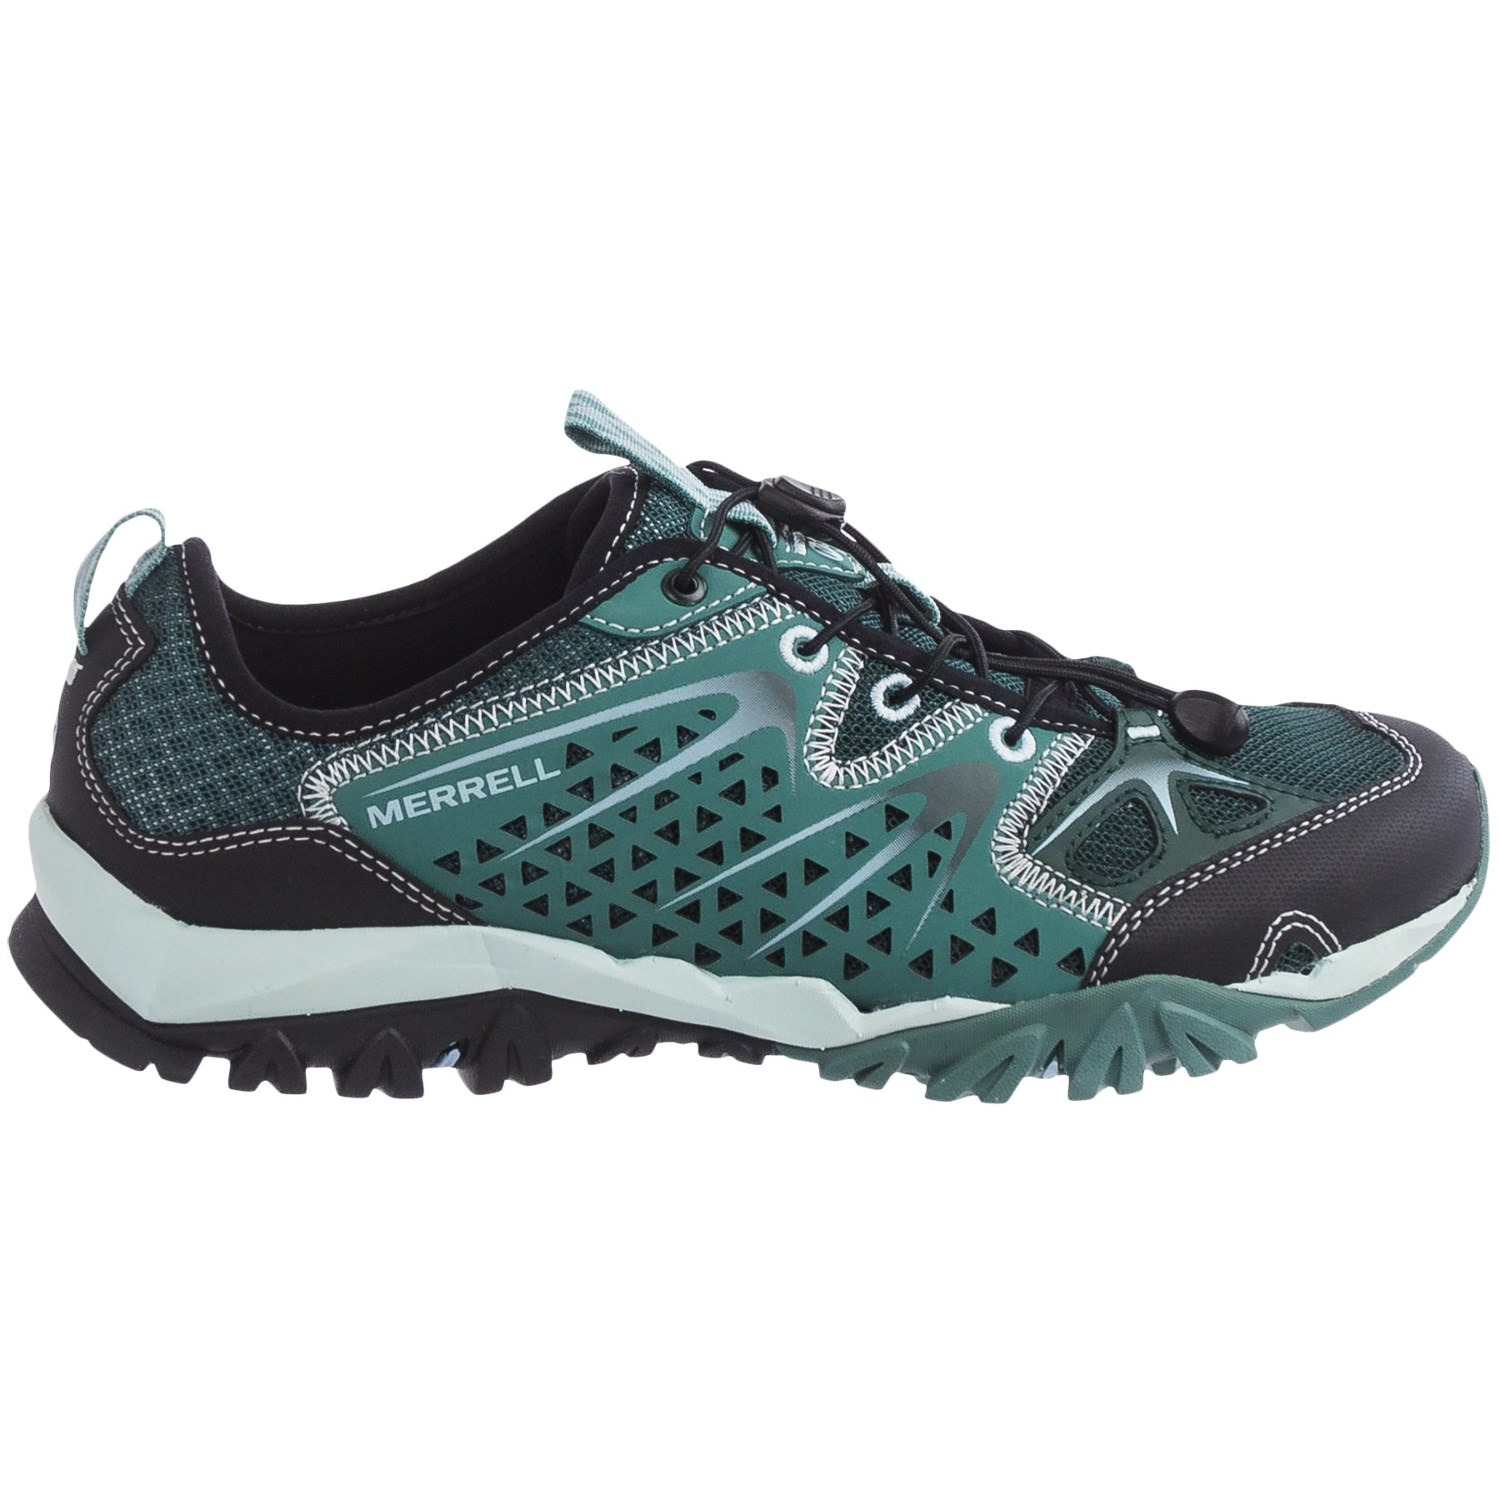 Merrell Capra Rapid Water Shoes (For Women) - Save 50%